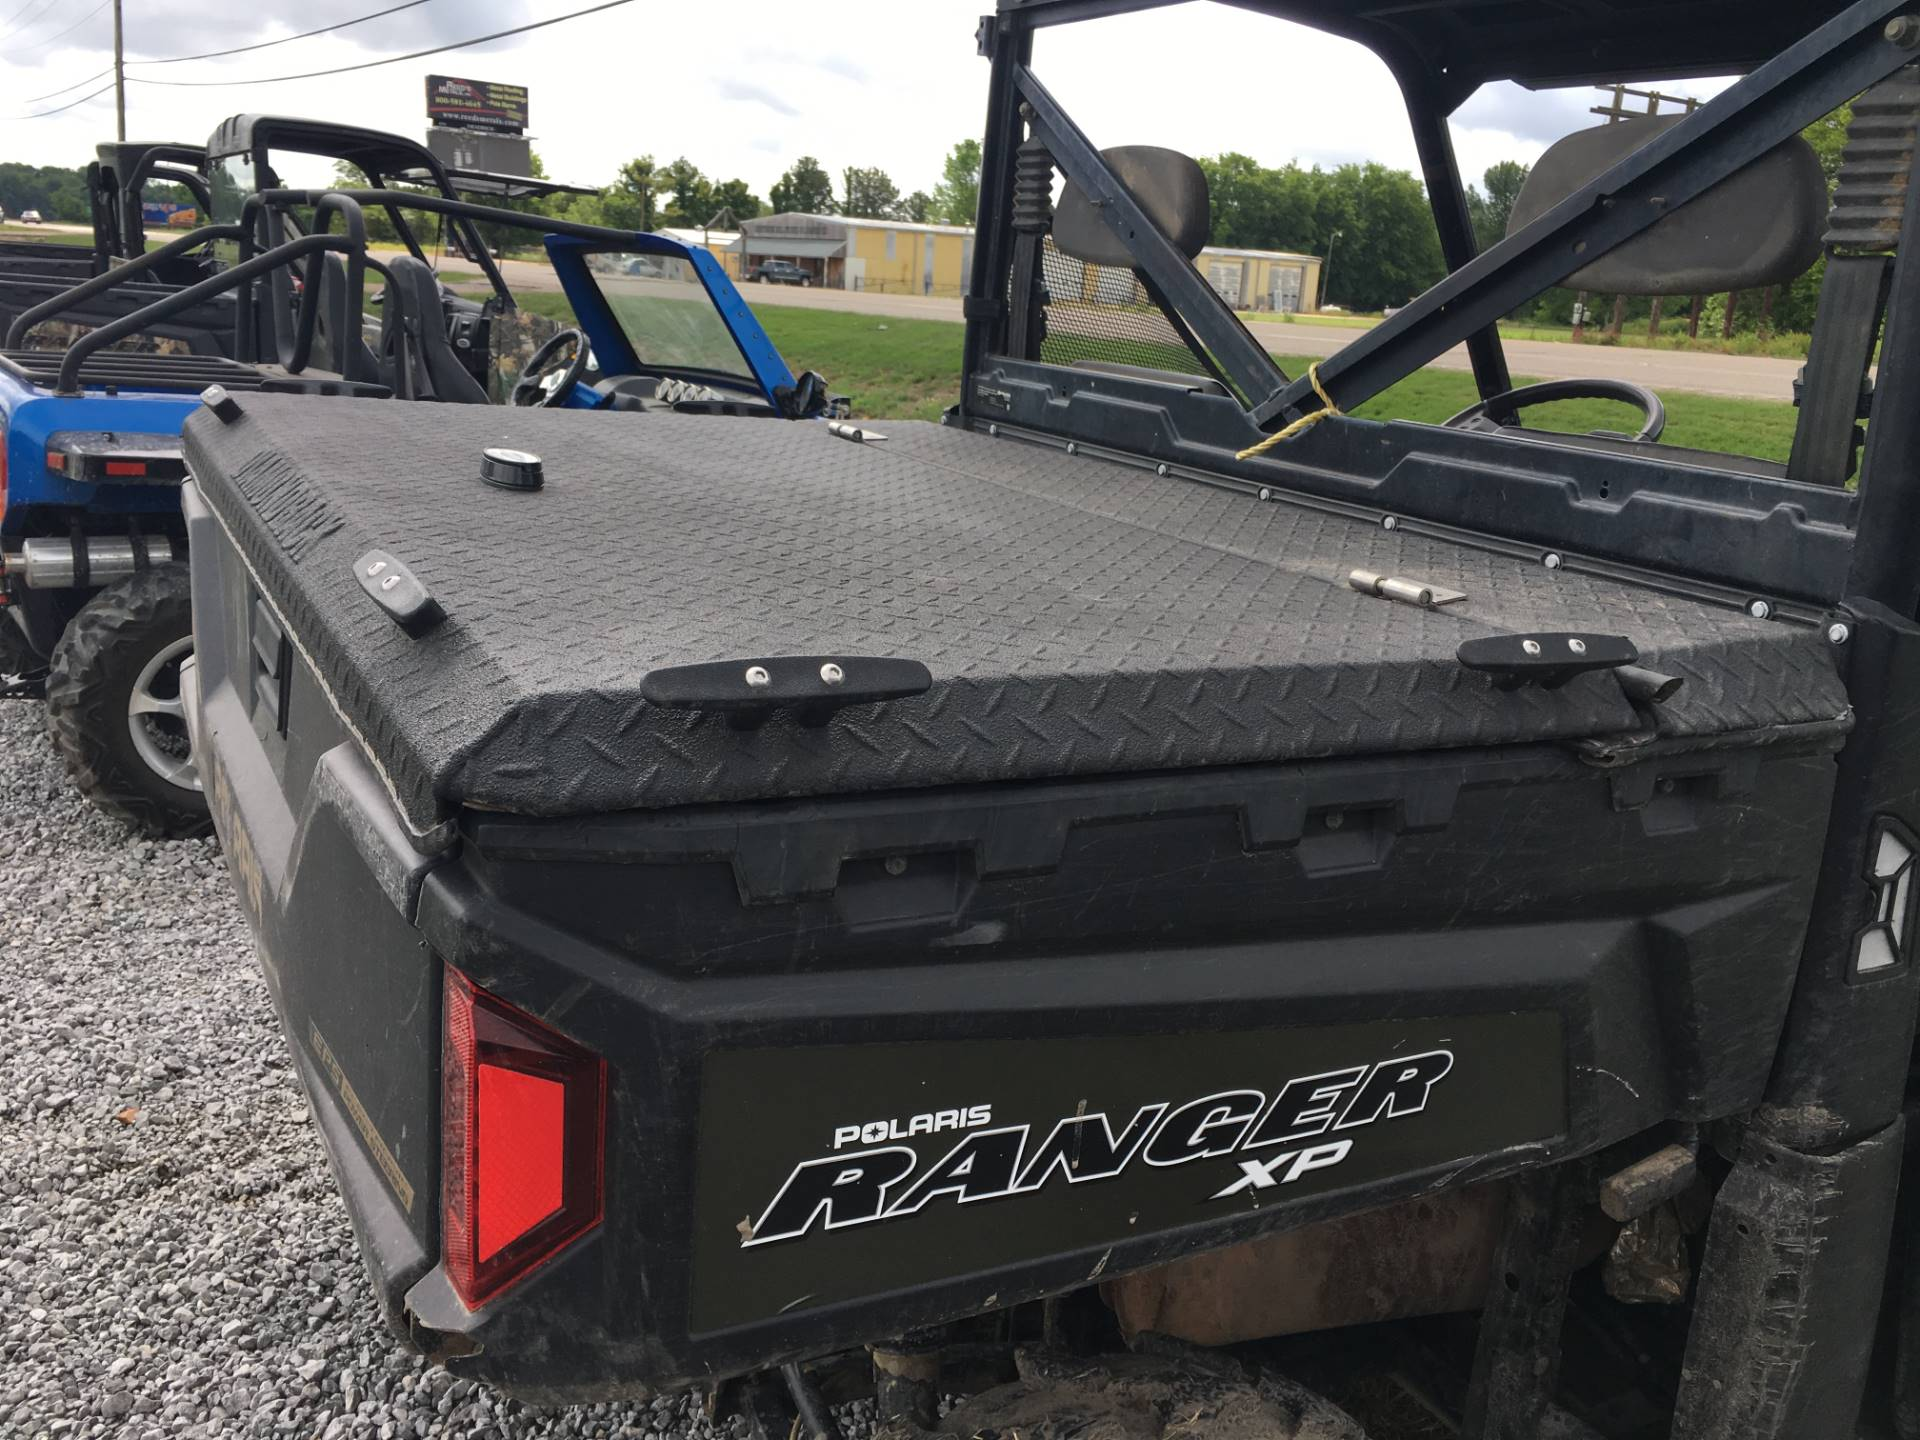 2013 Polaris Ranger XP® 900 EPS Browning® LE in Leland, Mississippi